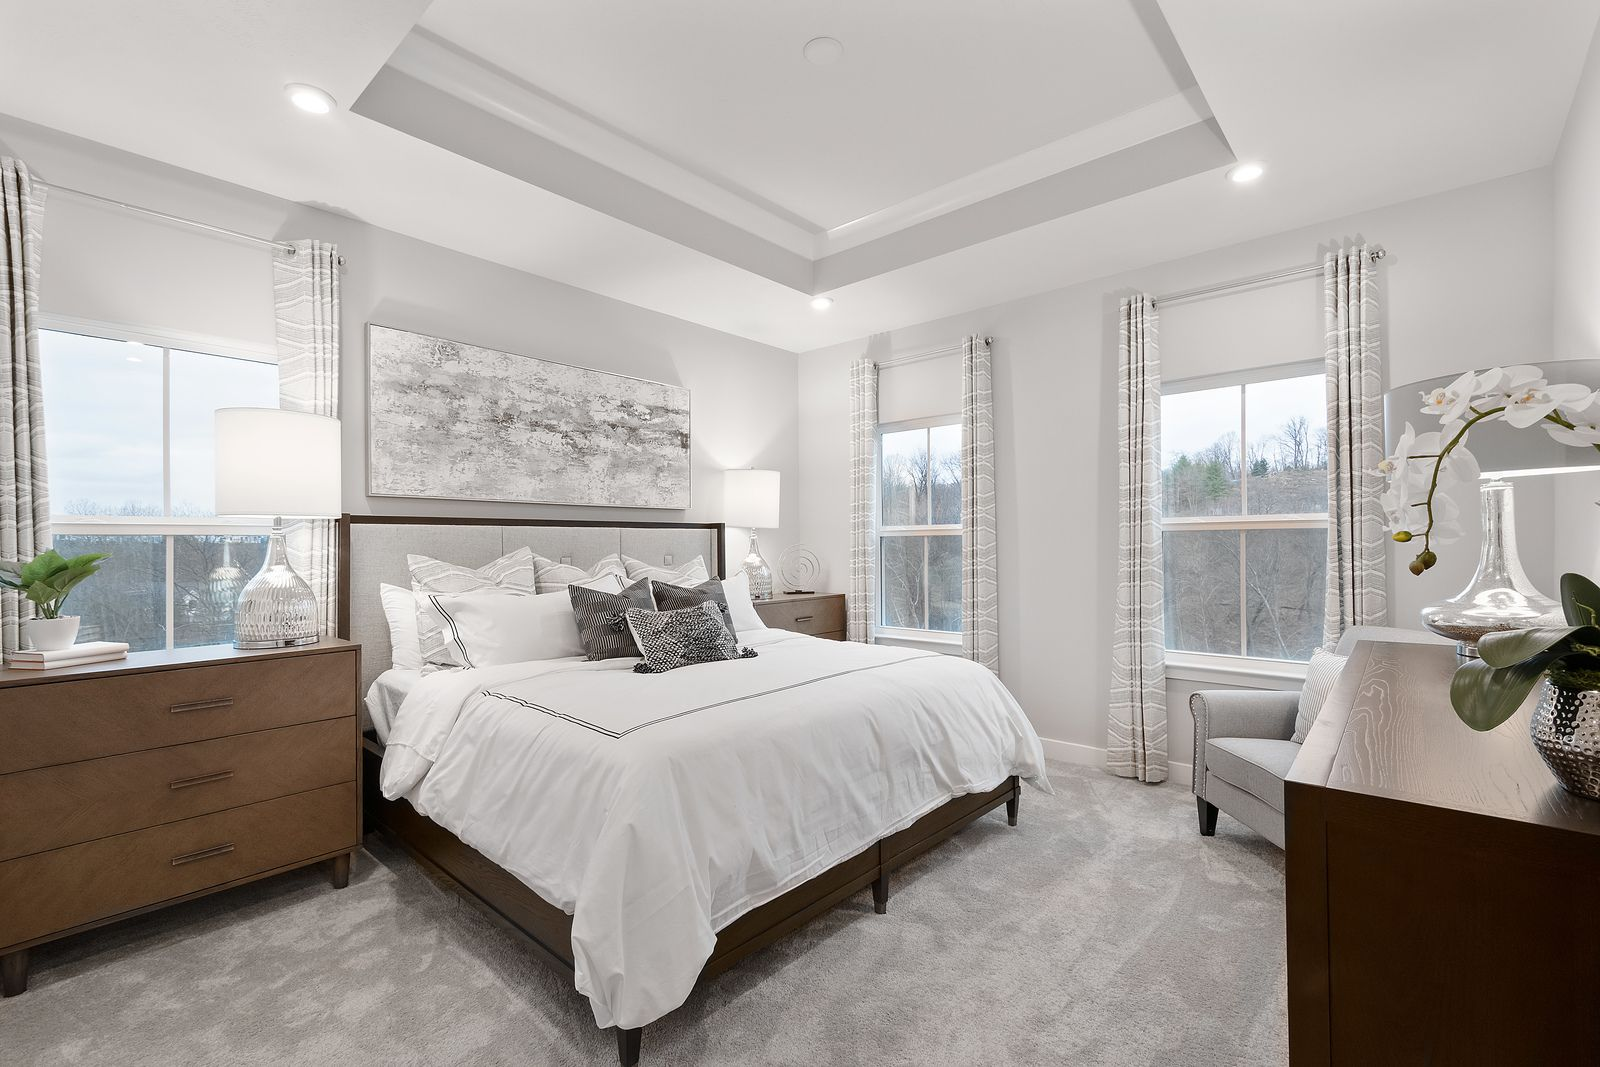 Bedroom featured in the Calvert By Ryan Homes in Nashville, TN